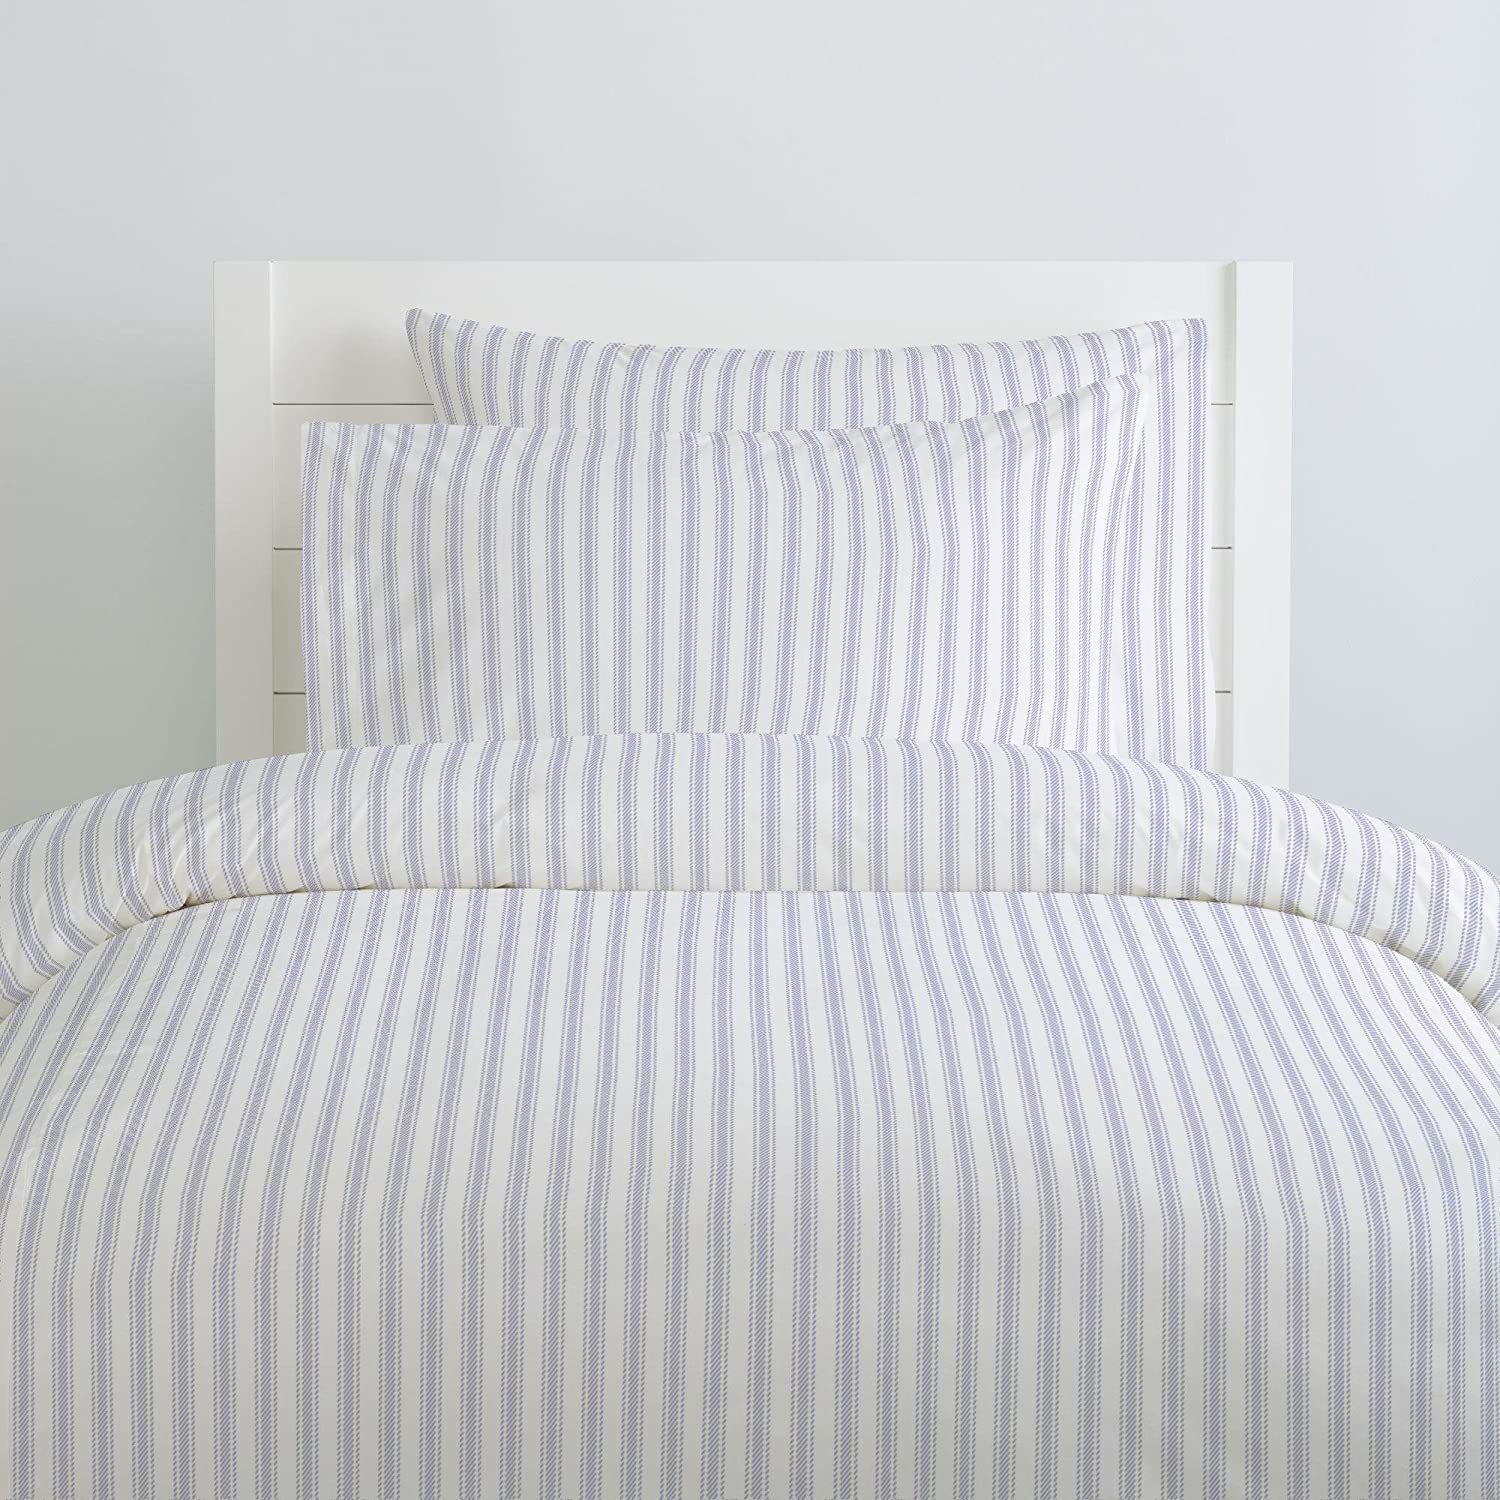 Amazoncom Carousel Designs Lavender Ticking Stripe Duvet Cover Queenfull Size